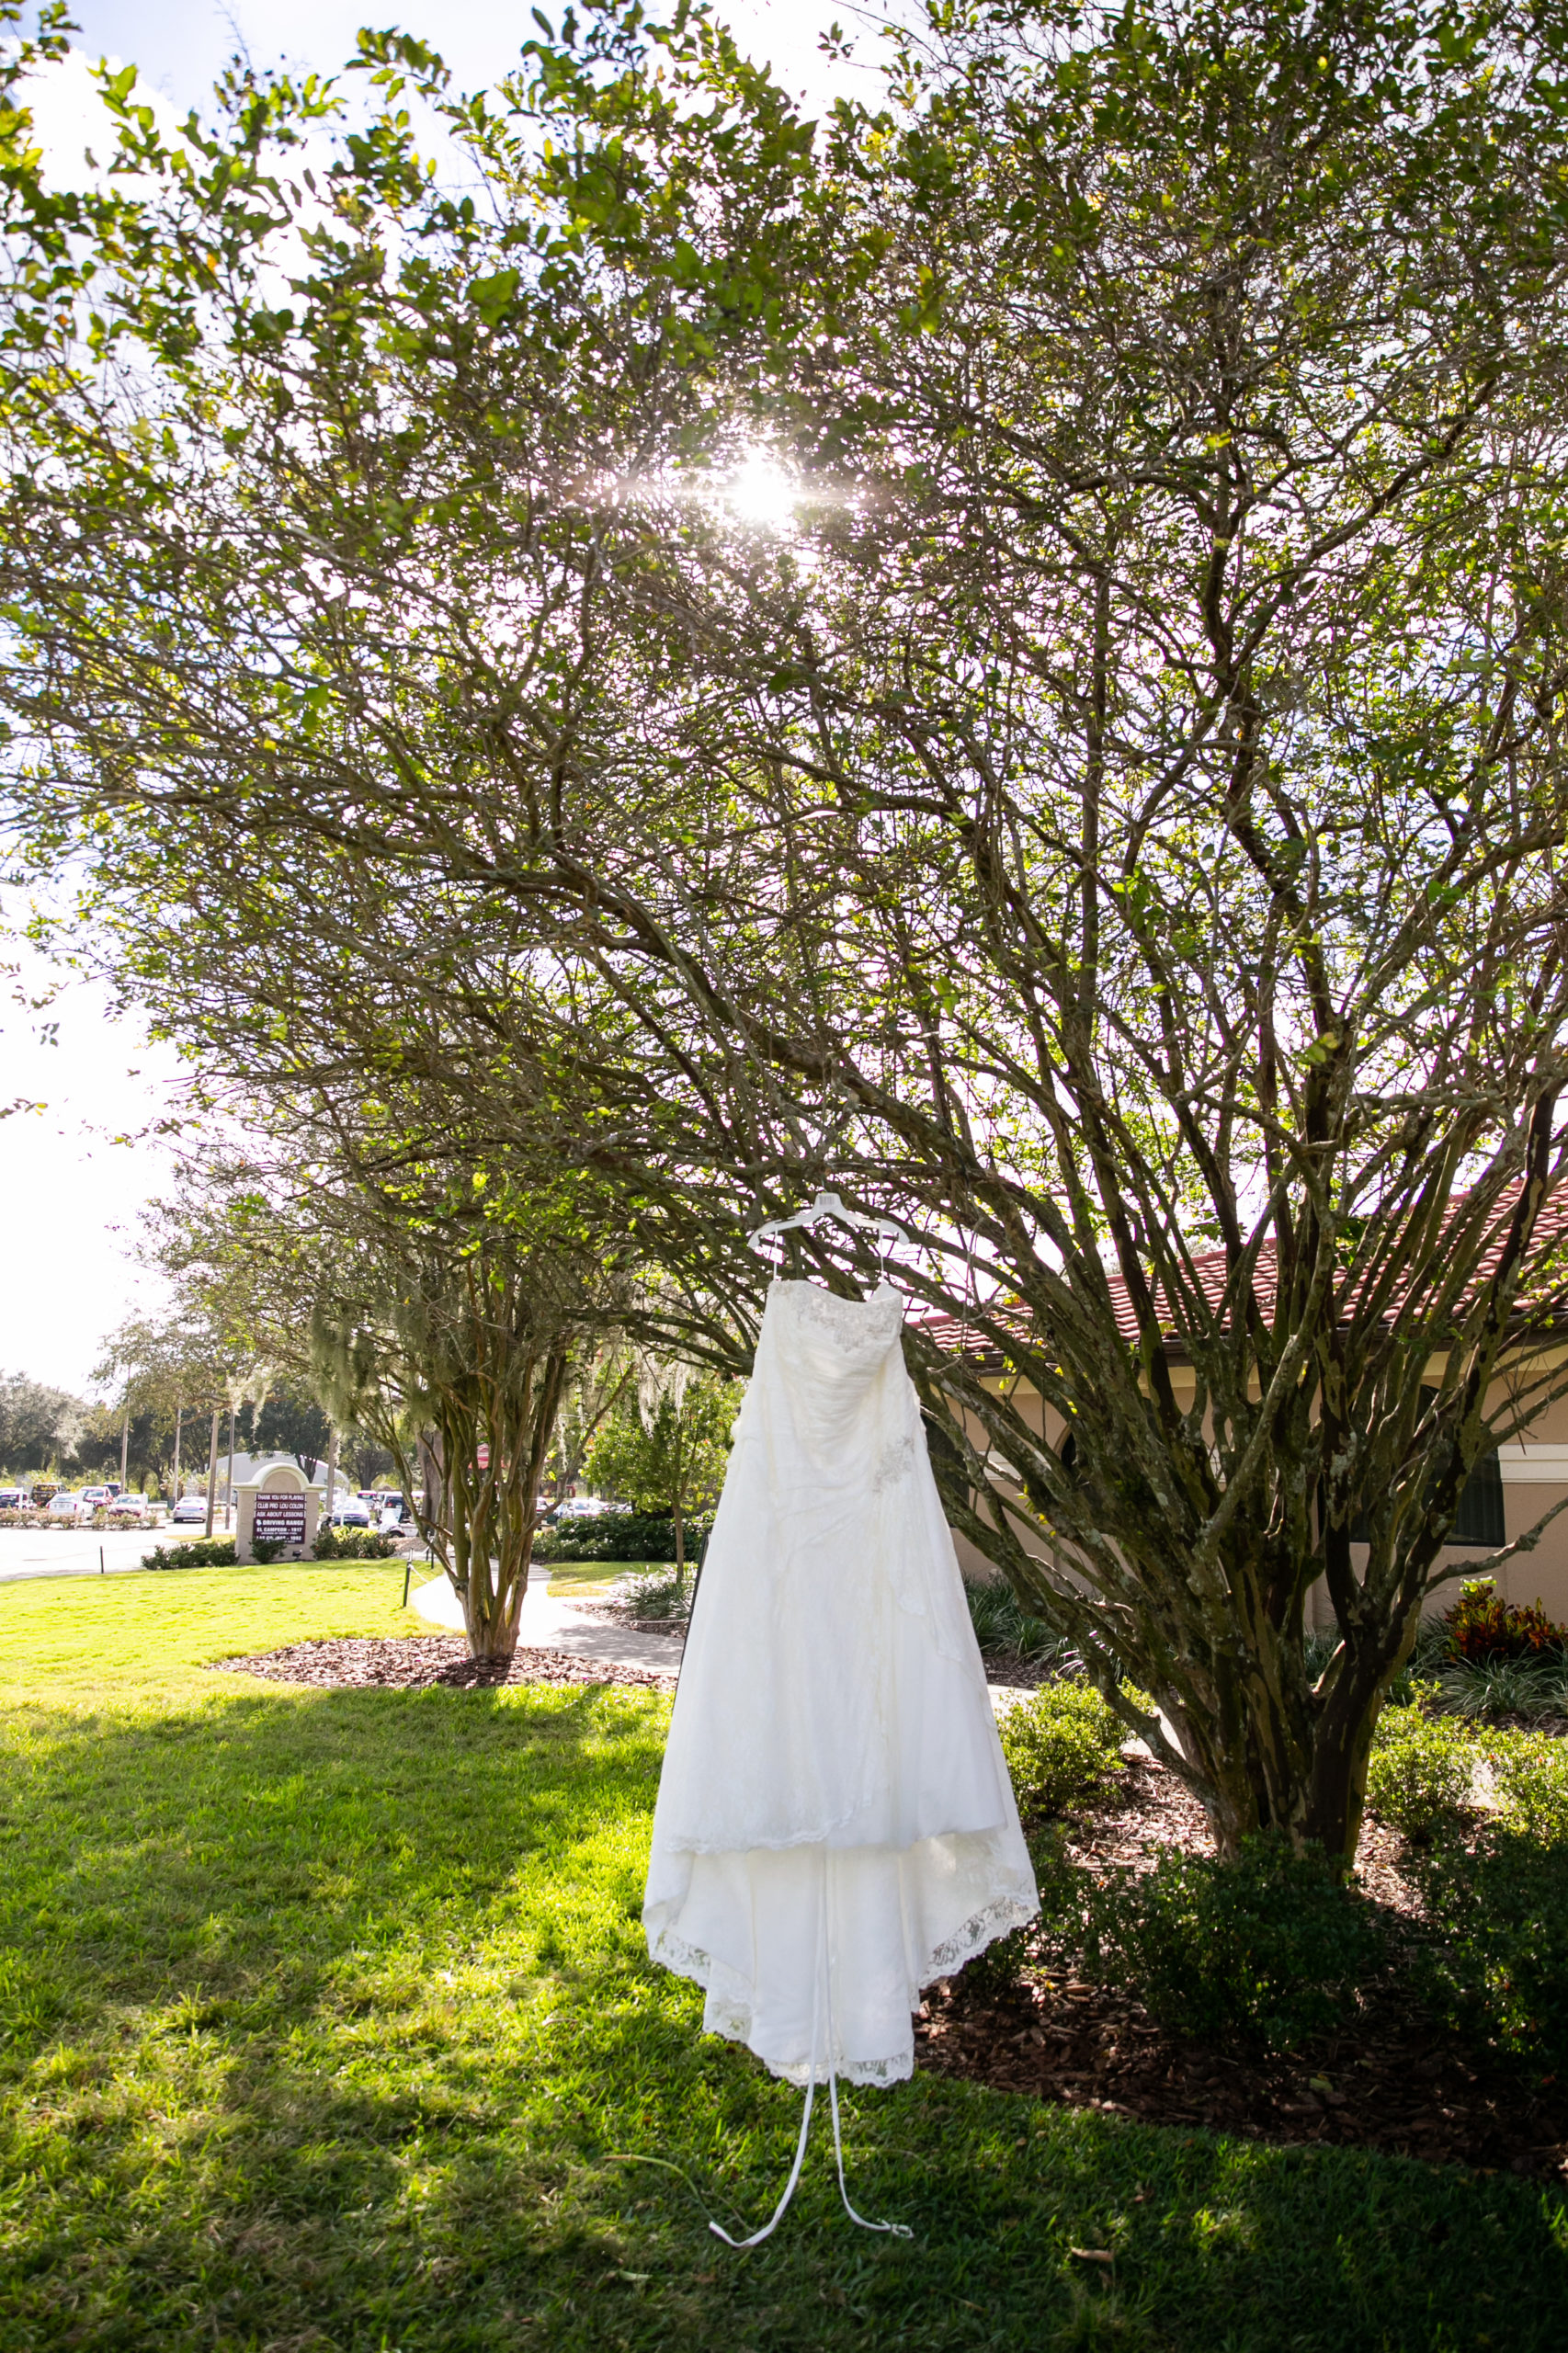 wedding dress in tree for vineyard inspired wedding